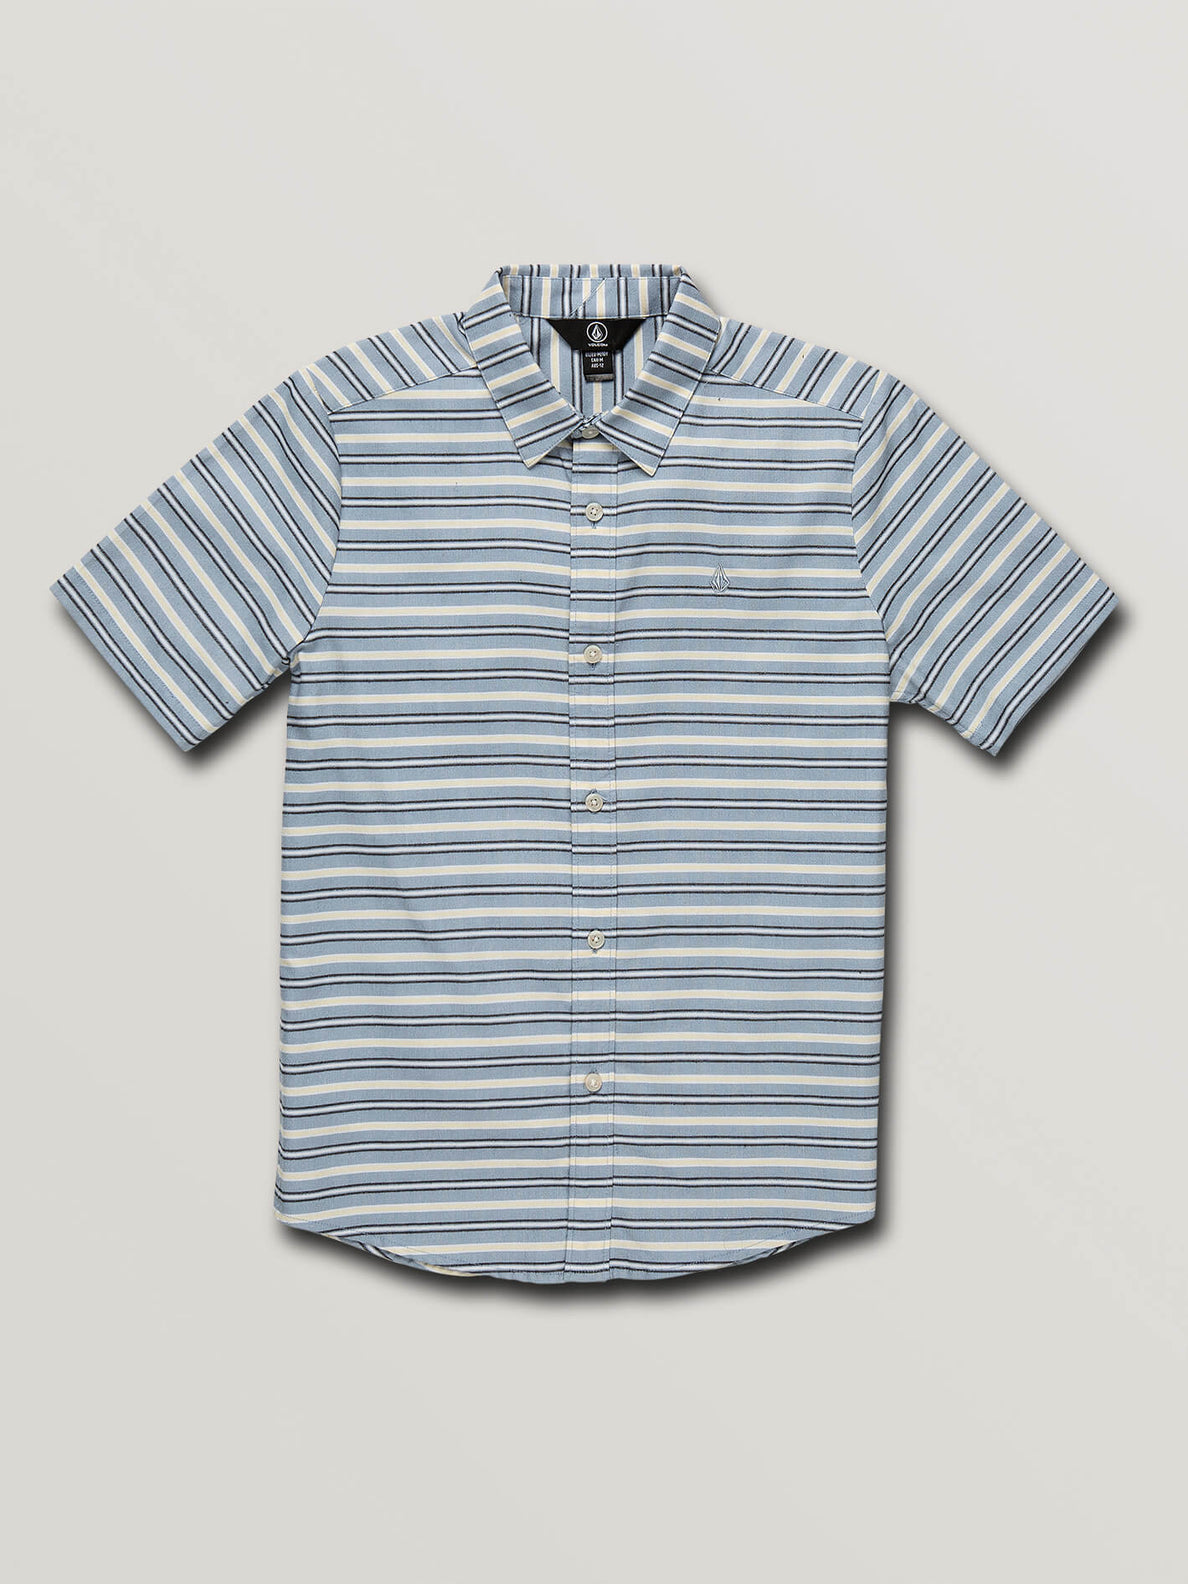 Big Boys Vert Toner Short Sleeve Shirt In Wrecked Indigo, Front View